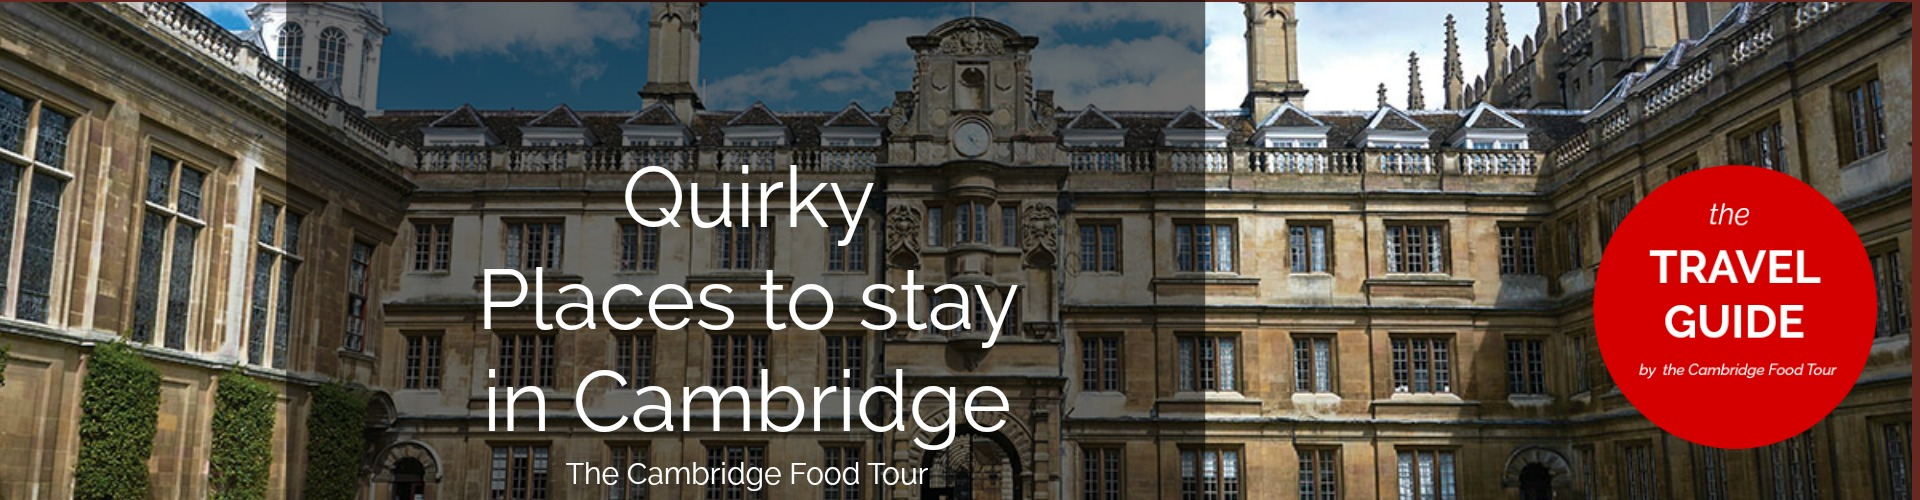 Cambrigde Travel guide Quirky places jpeg